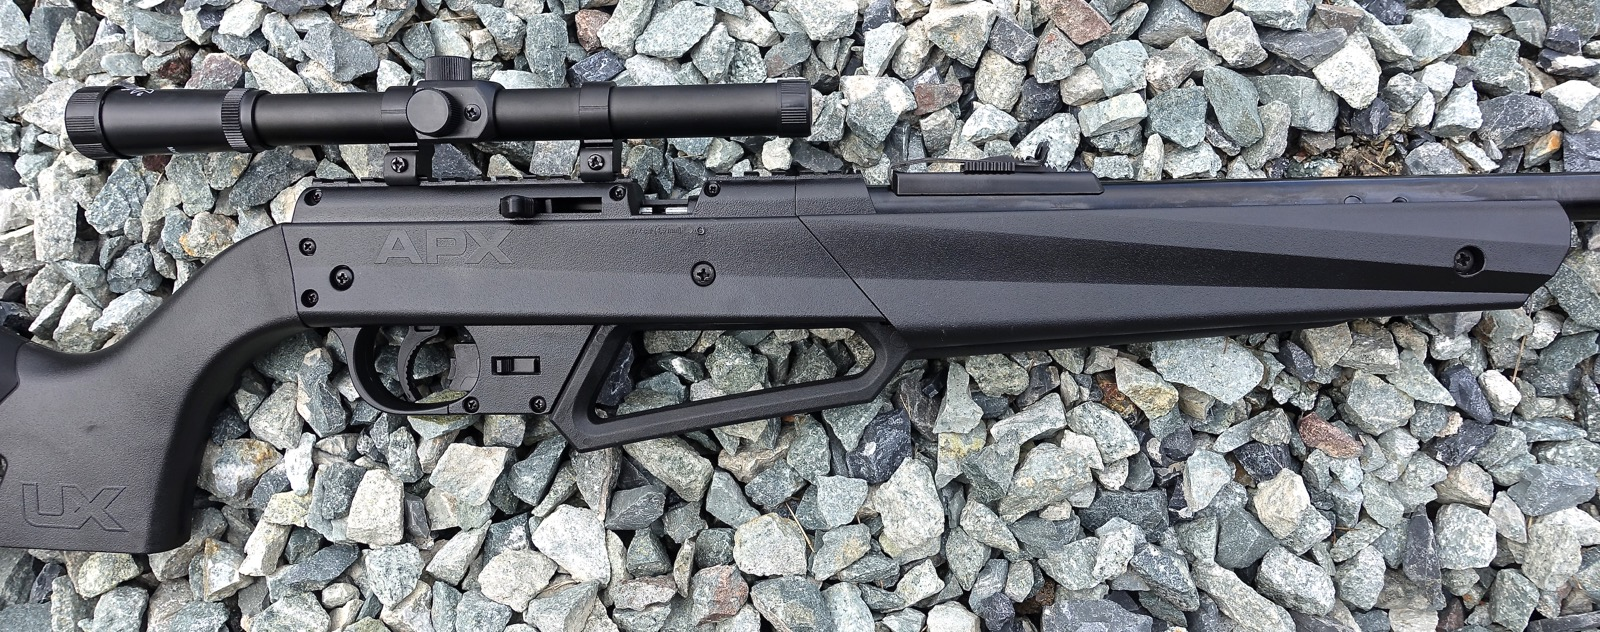 Umarex NXG APX Rigth Side Front Stock.jpg